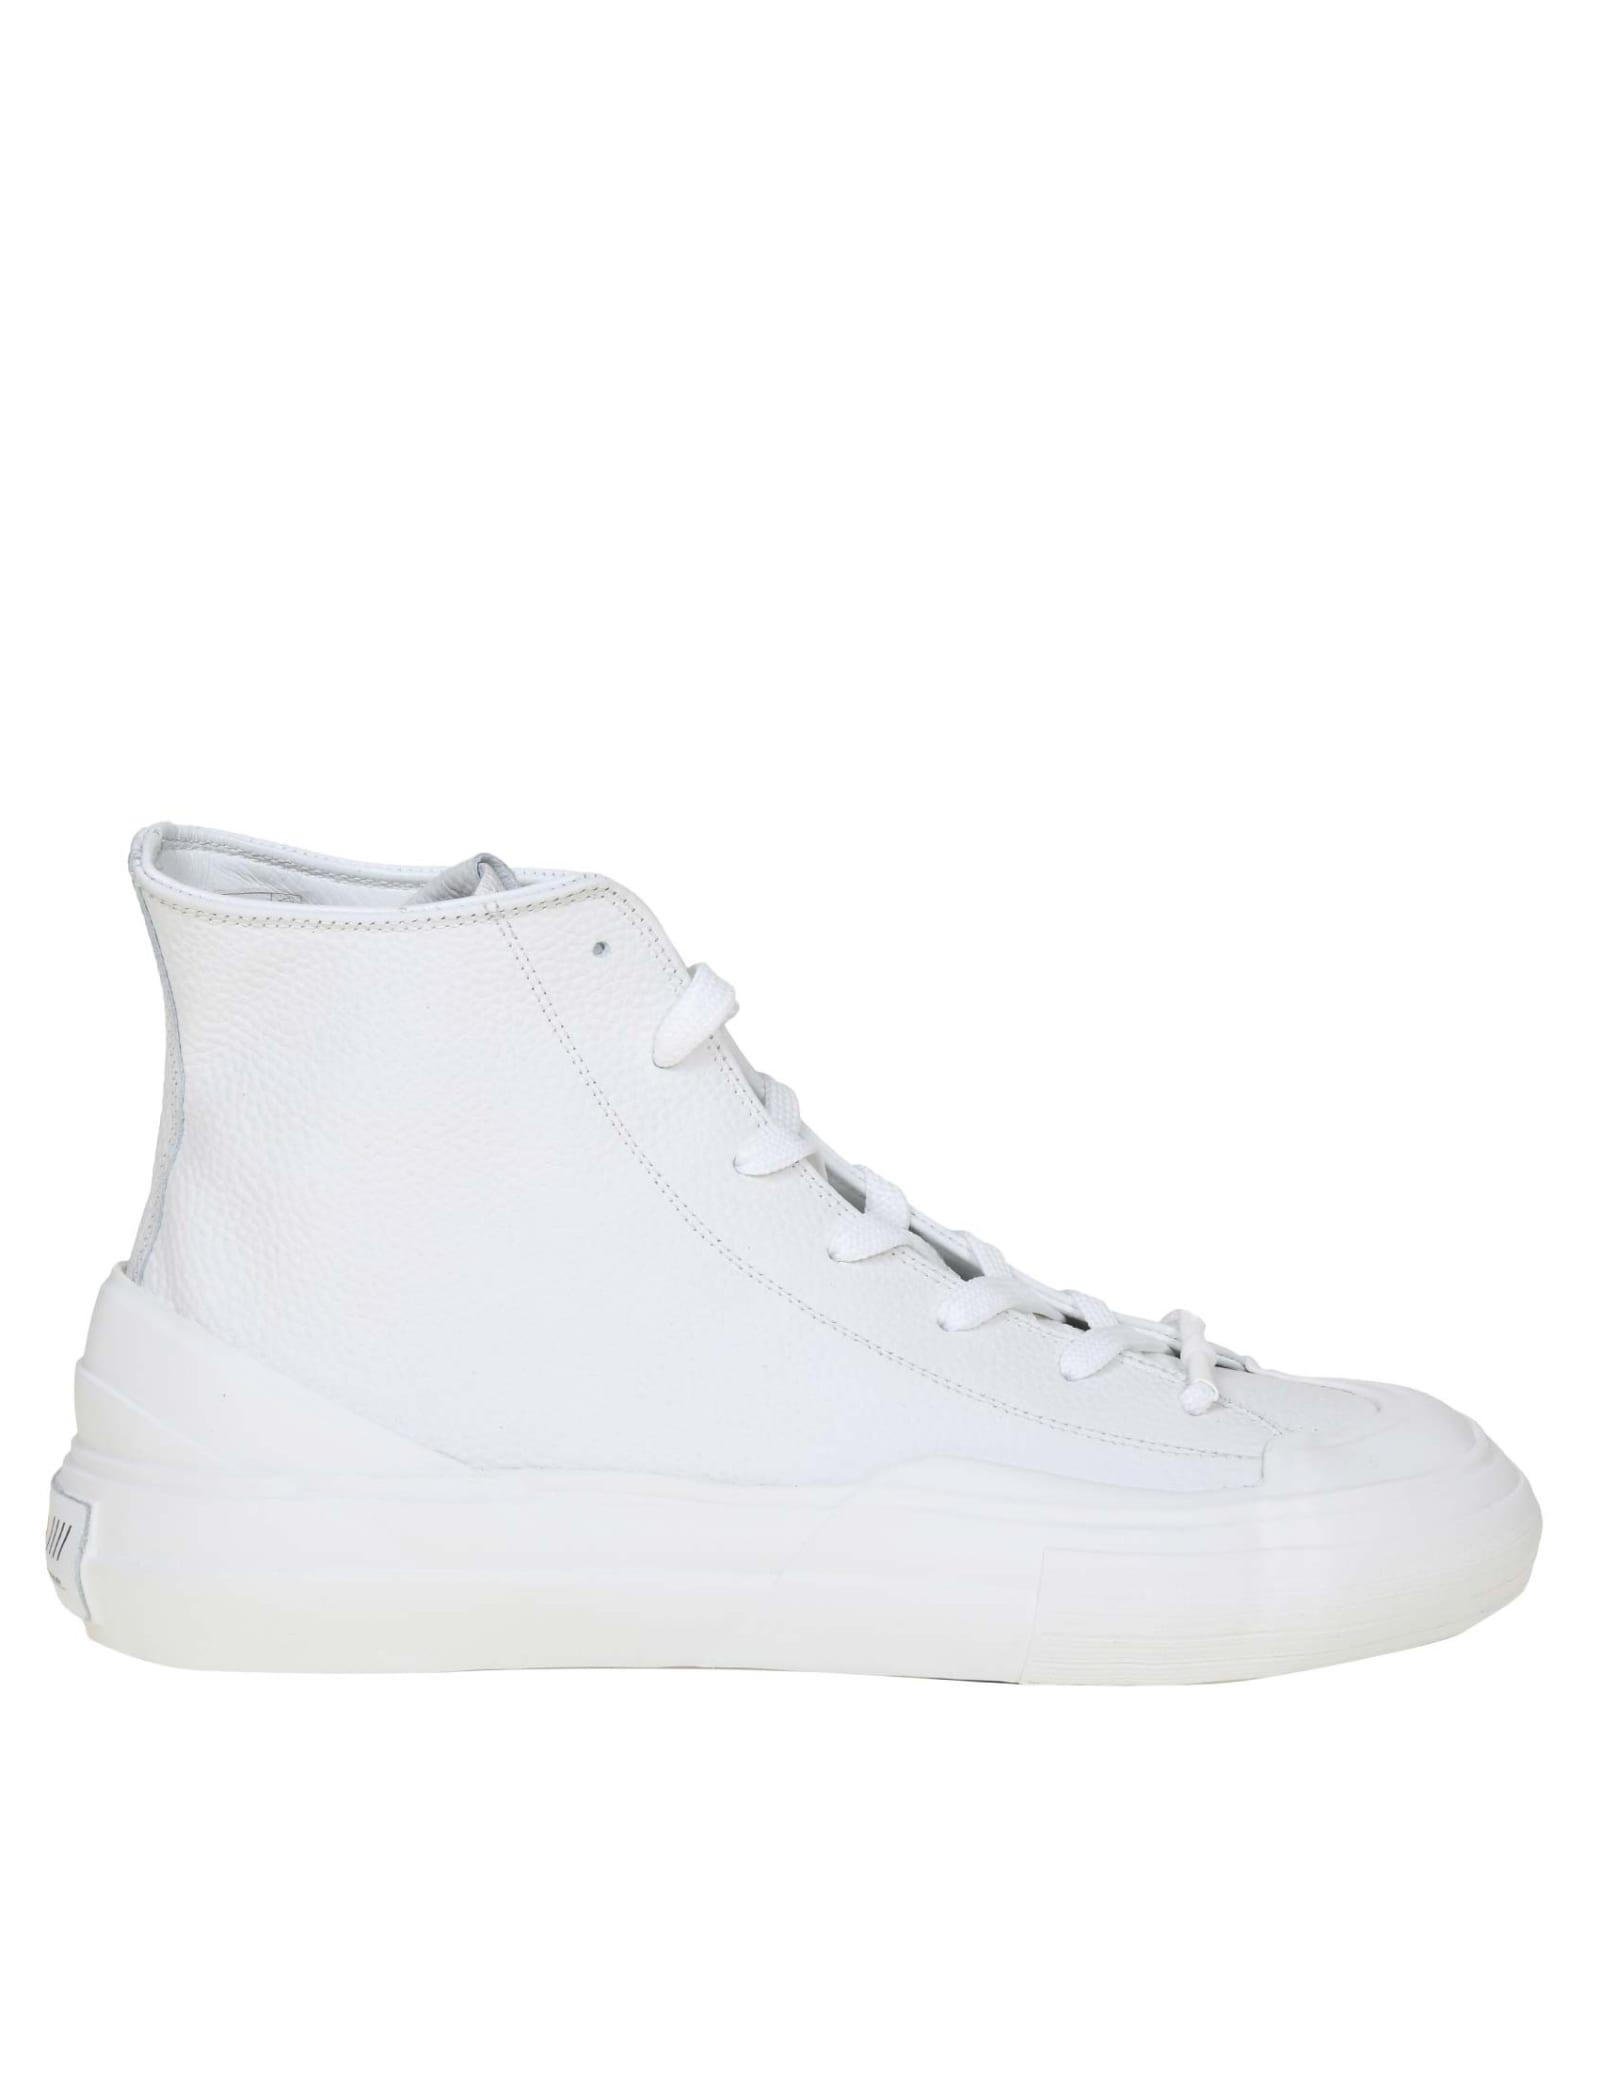 High Sneakers In White Leather